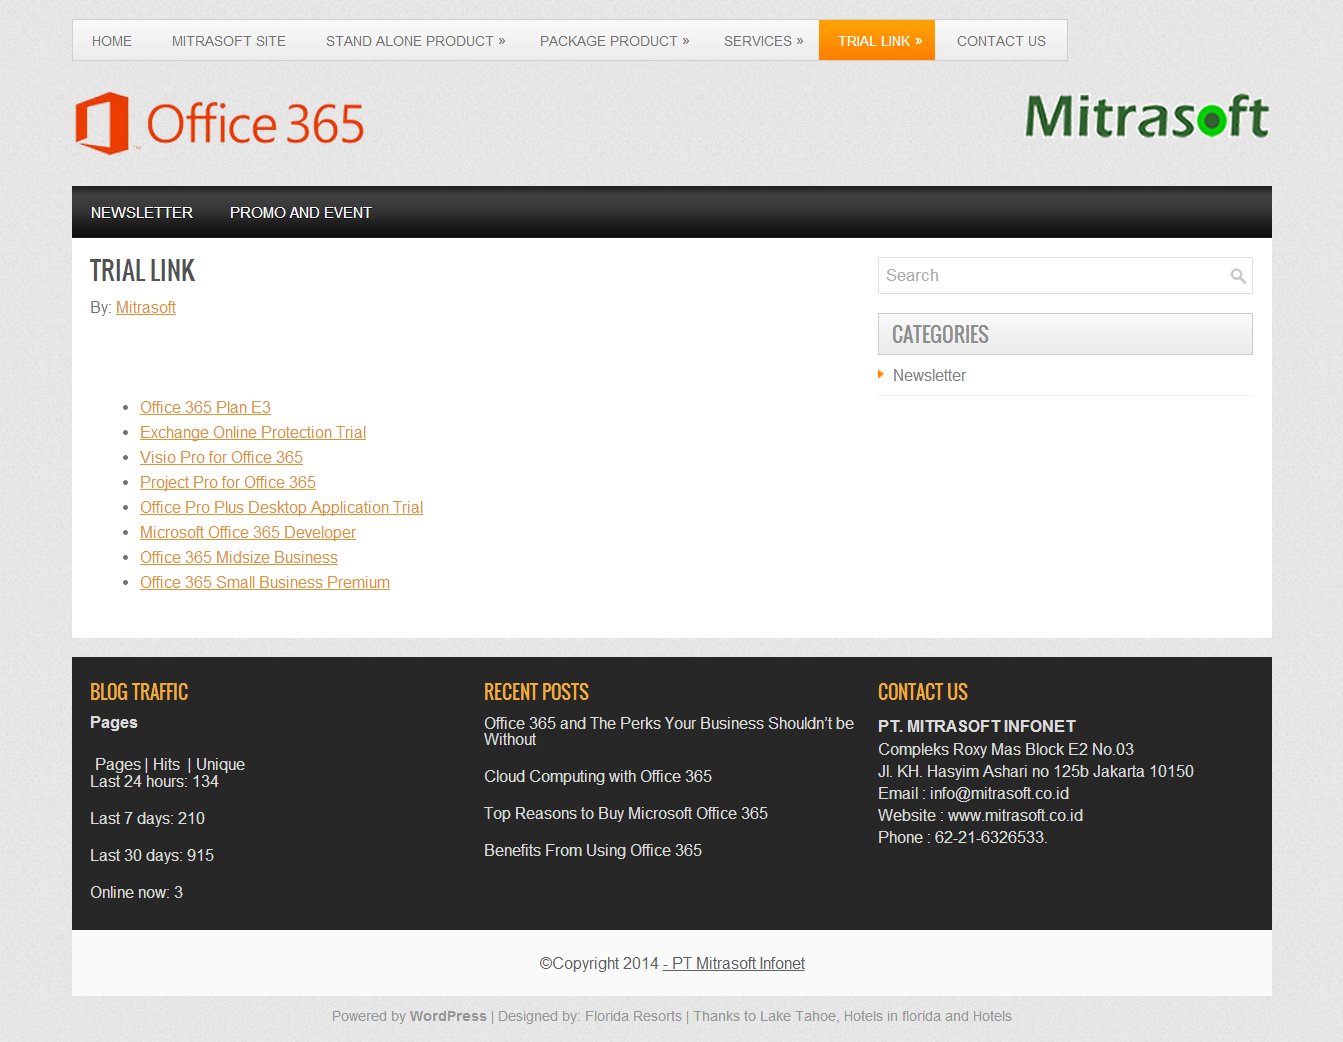 Mitrasoft Download Office365 Trial Office 365 Plan E3 Office 365